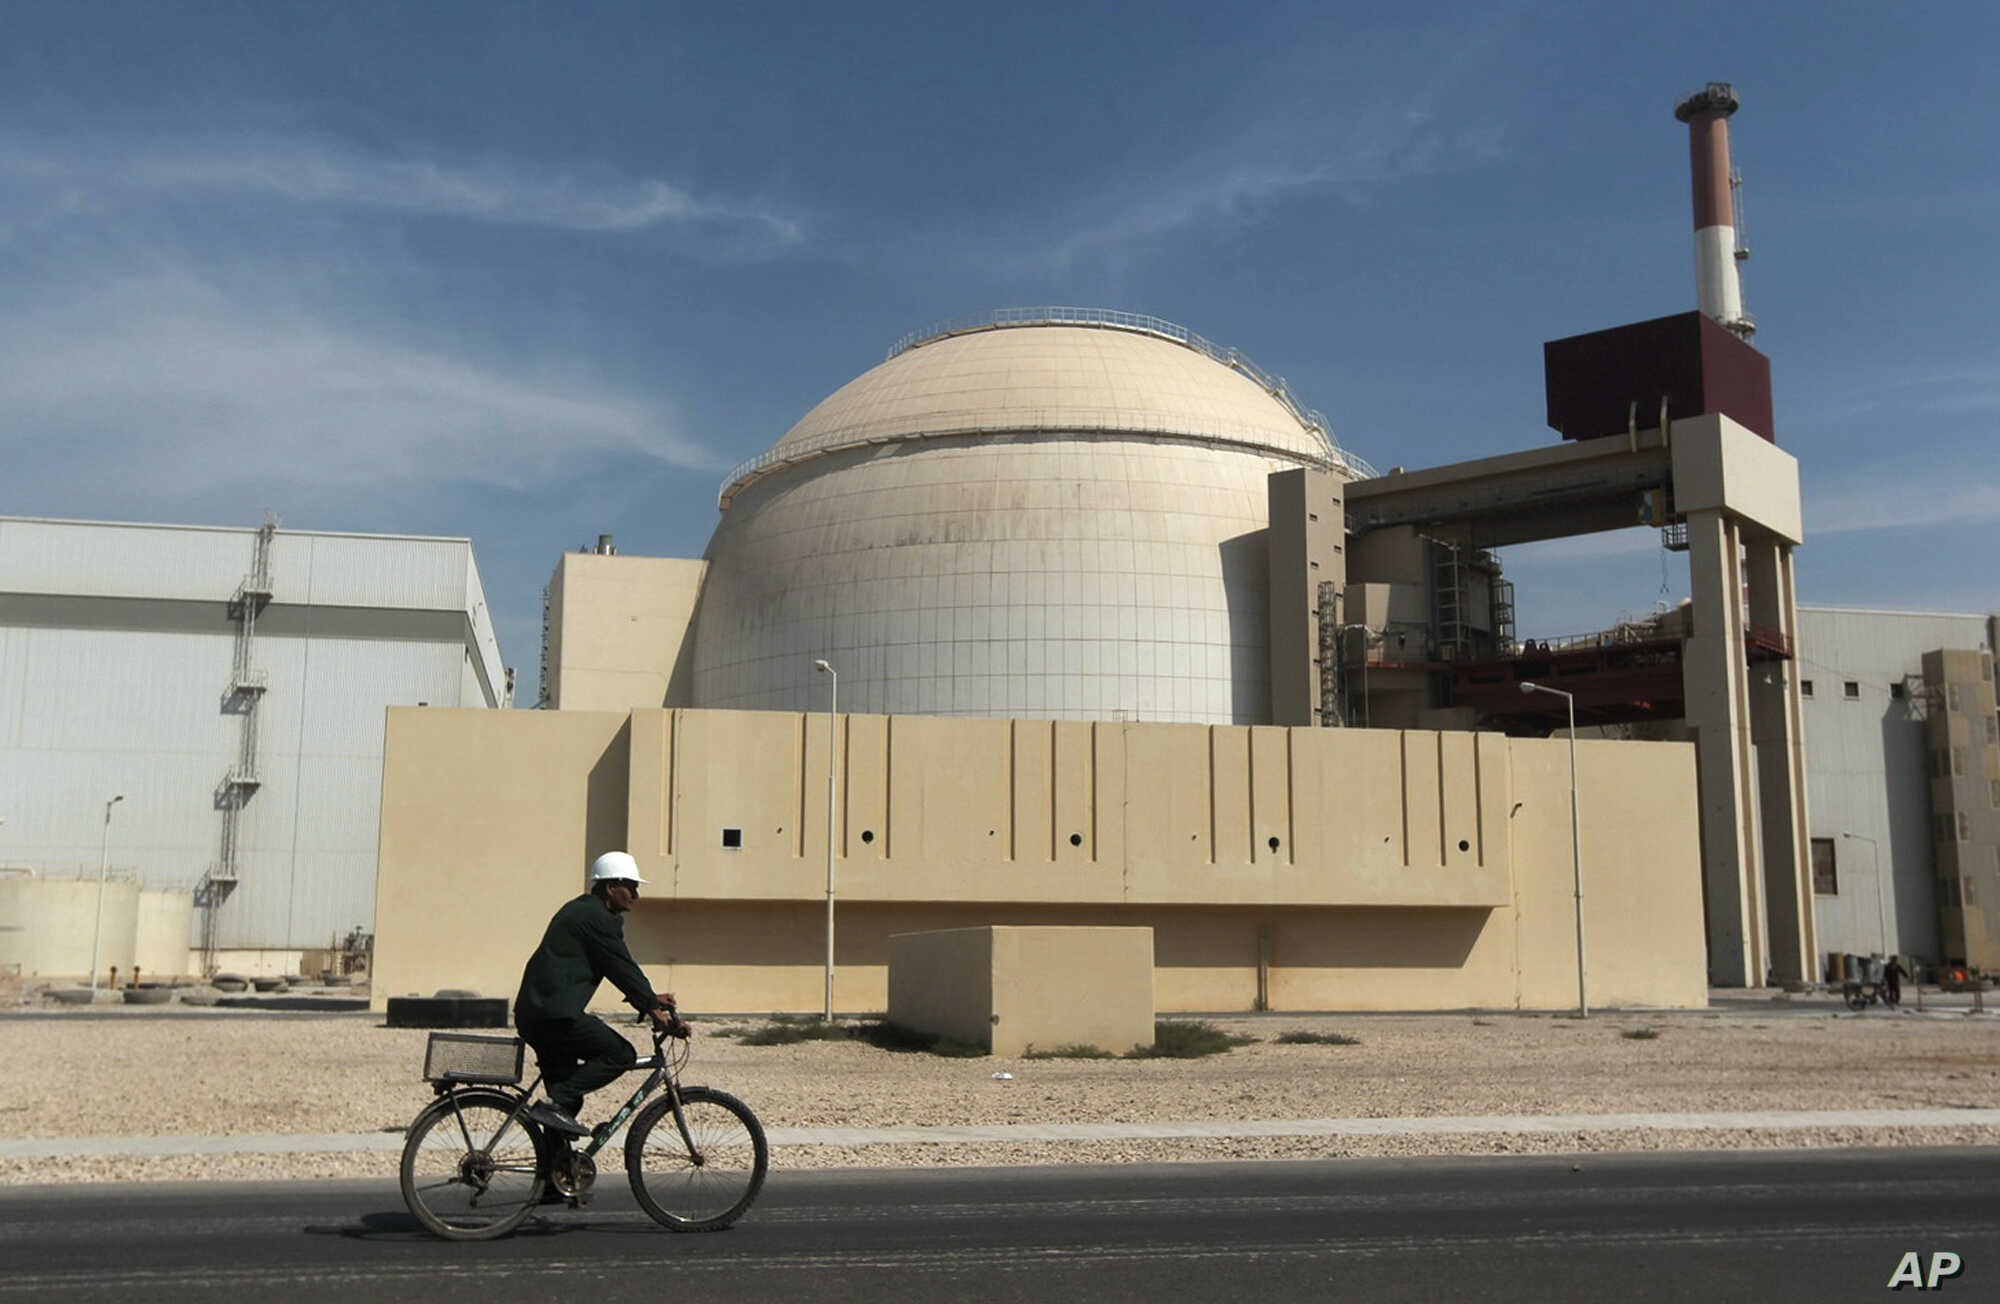 FILE: A bicyclist passes the nuclear power plant just outside Bushehr, Iran, on Oct. 26, 2010. U.S. and Iranian representatives plan to meet before the next round of nuclear talks with world powers.